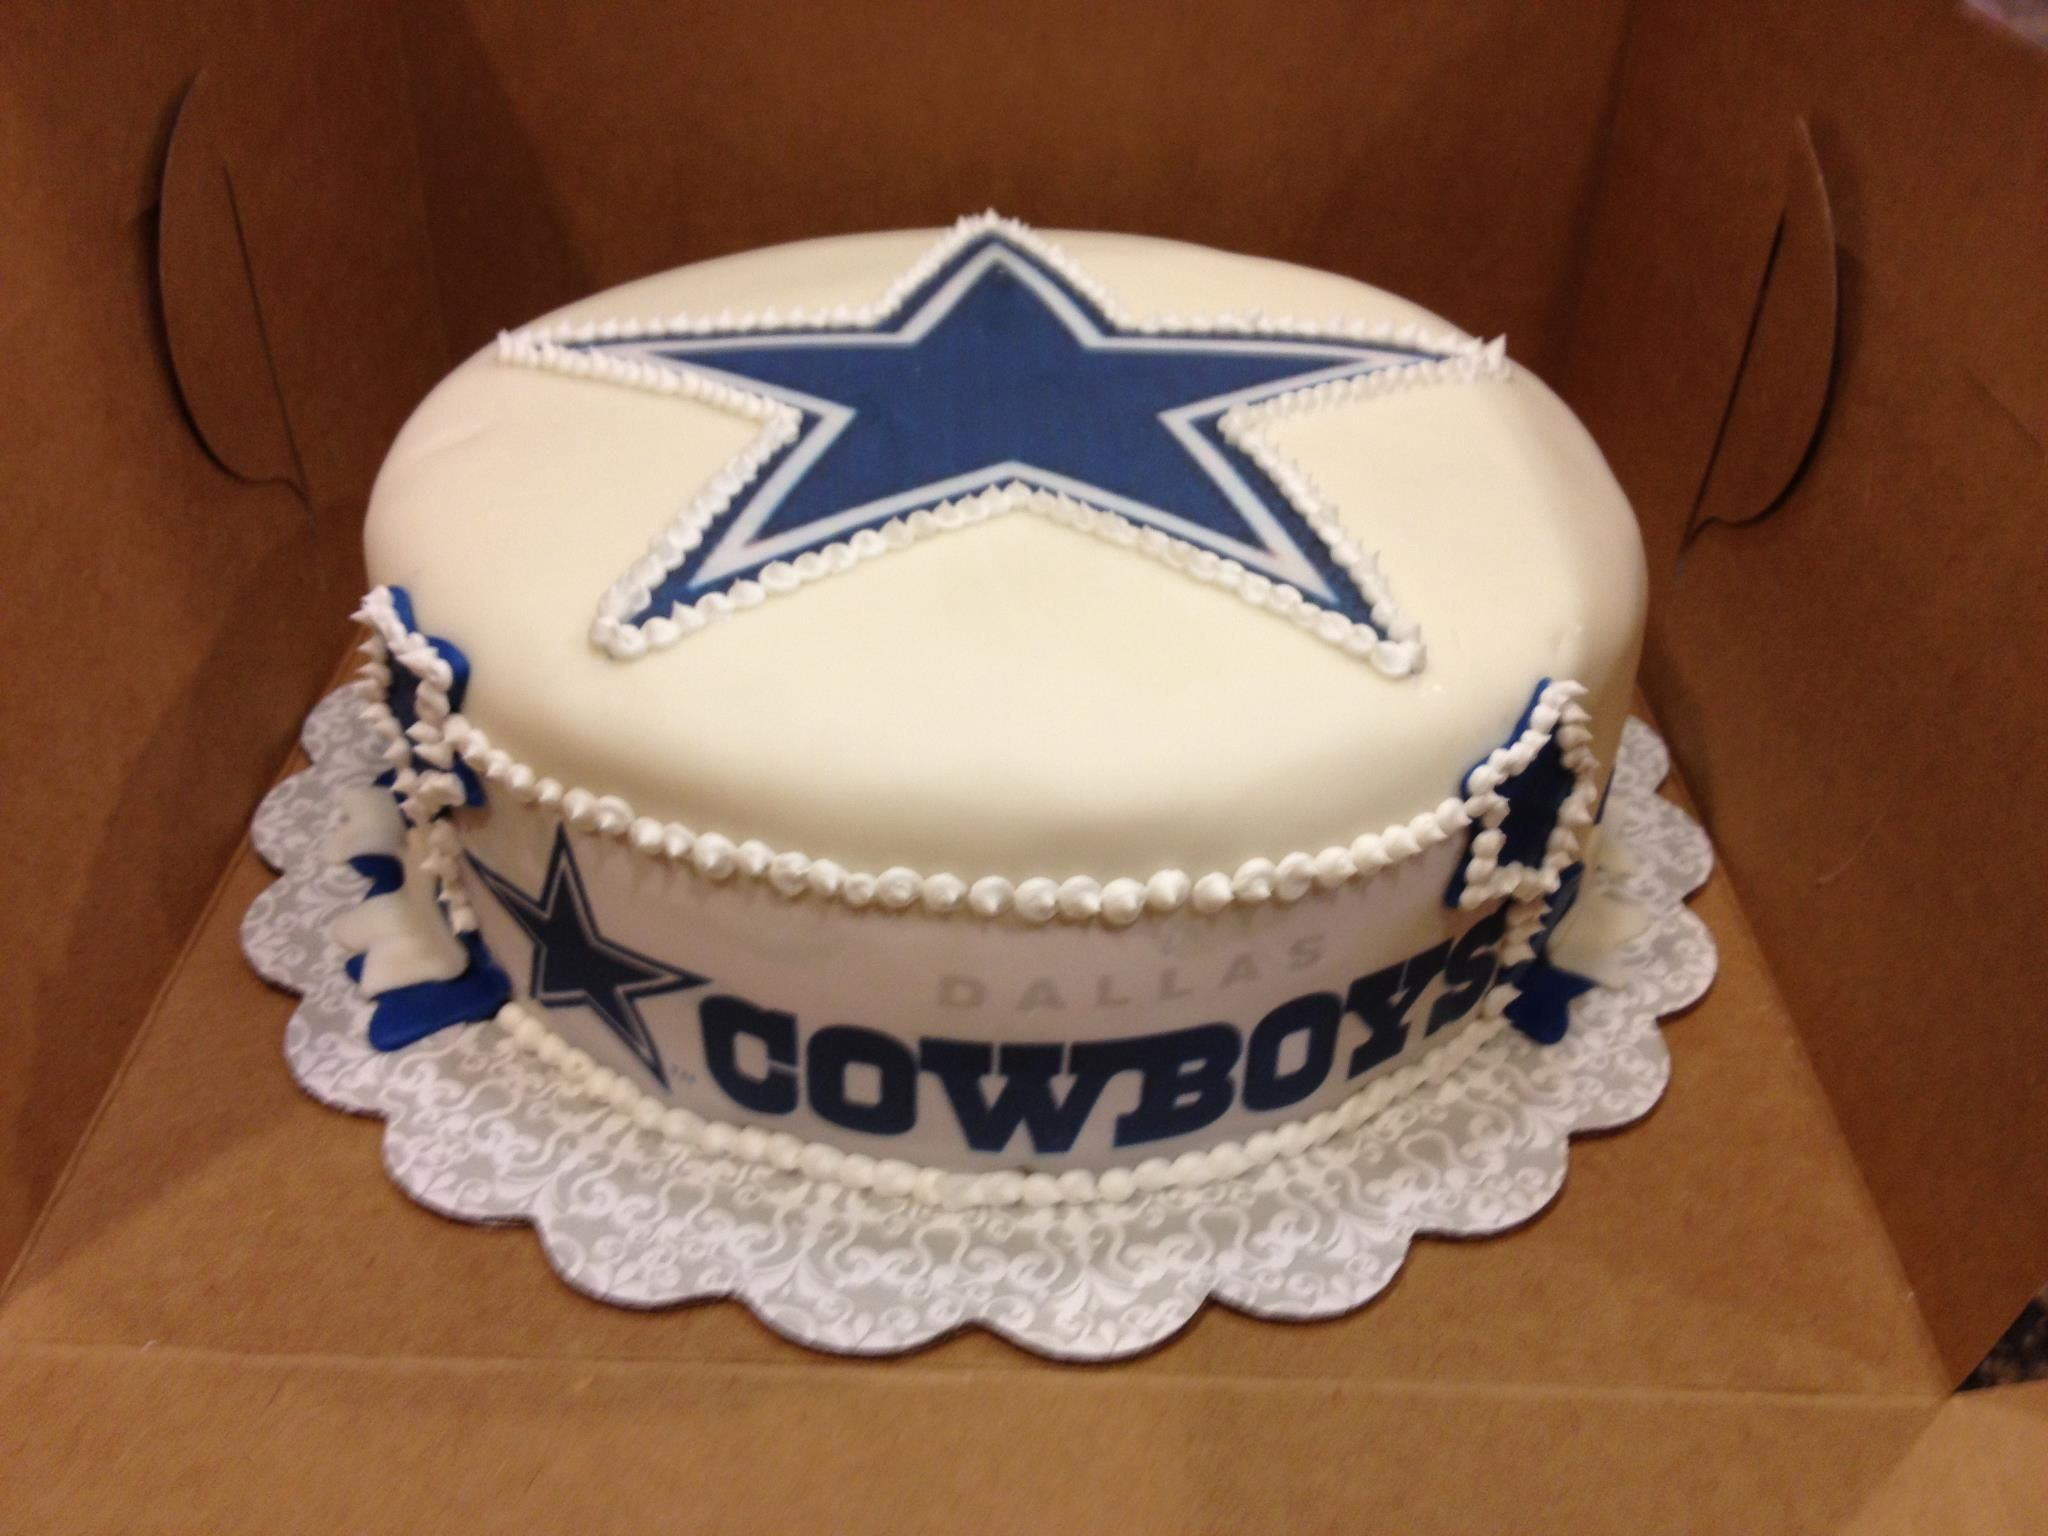 Dallas cowboys birthday cake ideas and designs - Dallas Cowboys Cake This Would Be Nice For My Birthday